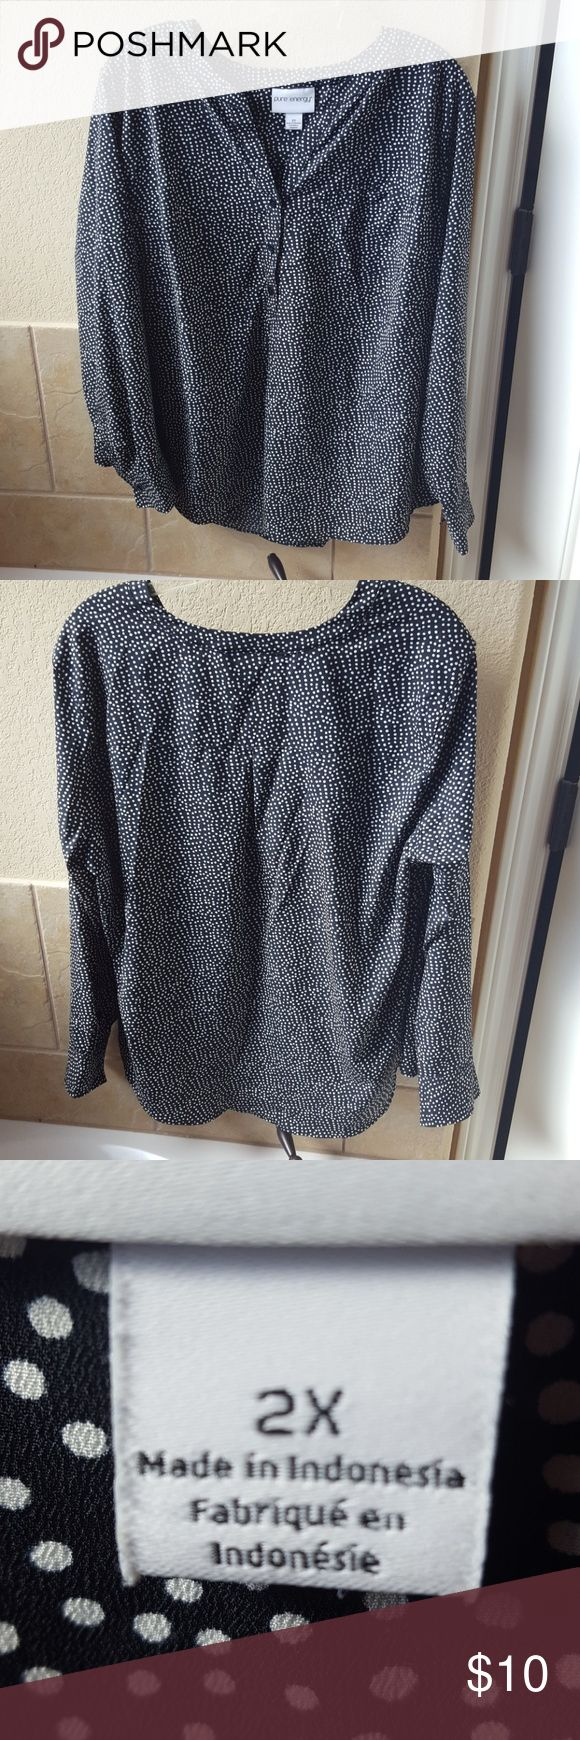 Long sleeve polka dot blouse Excellent used condition. Button sleeves and a couple of button on the neckline. No flaws. Pure Energy Tops Blouses